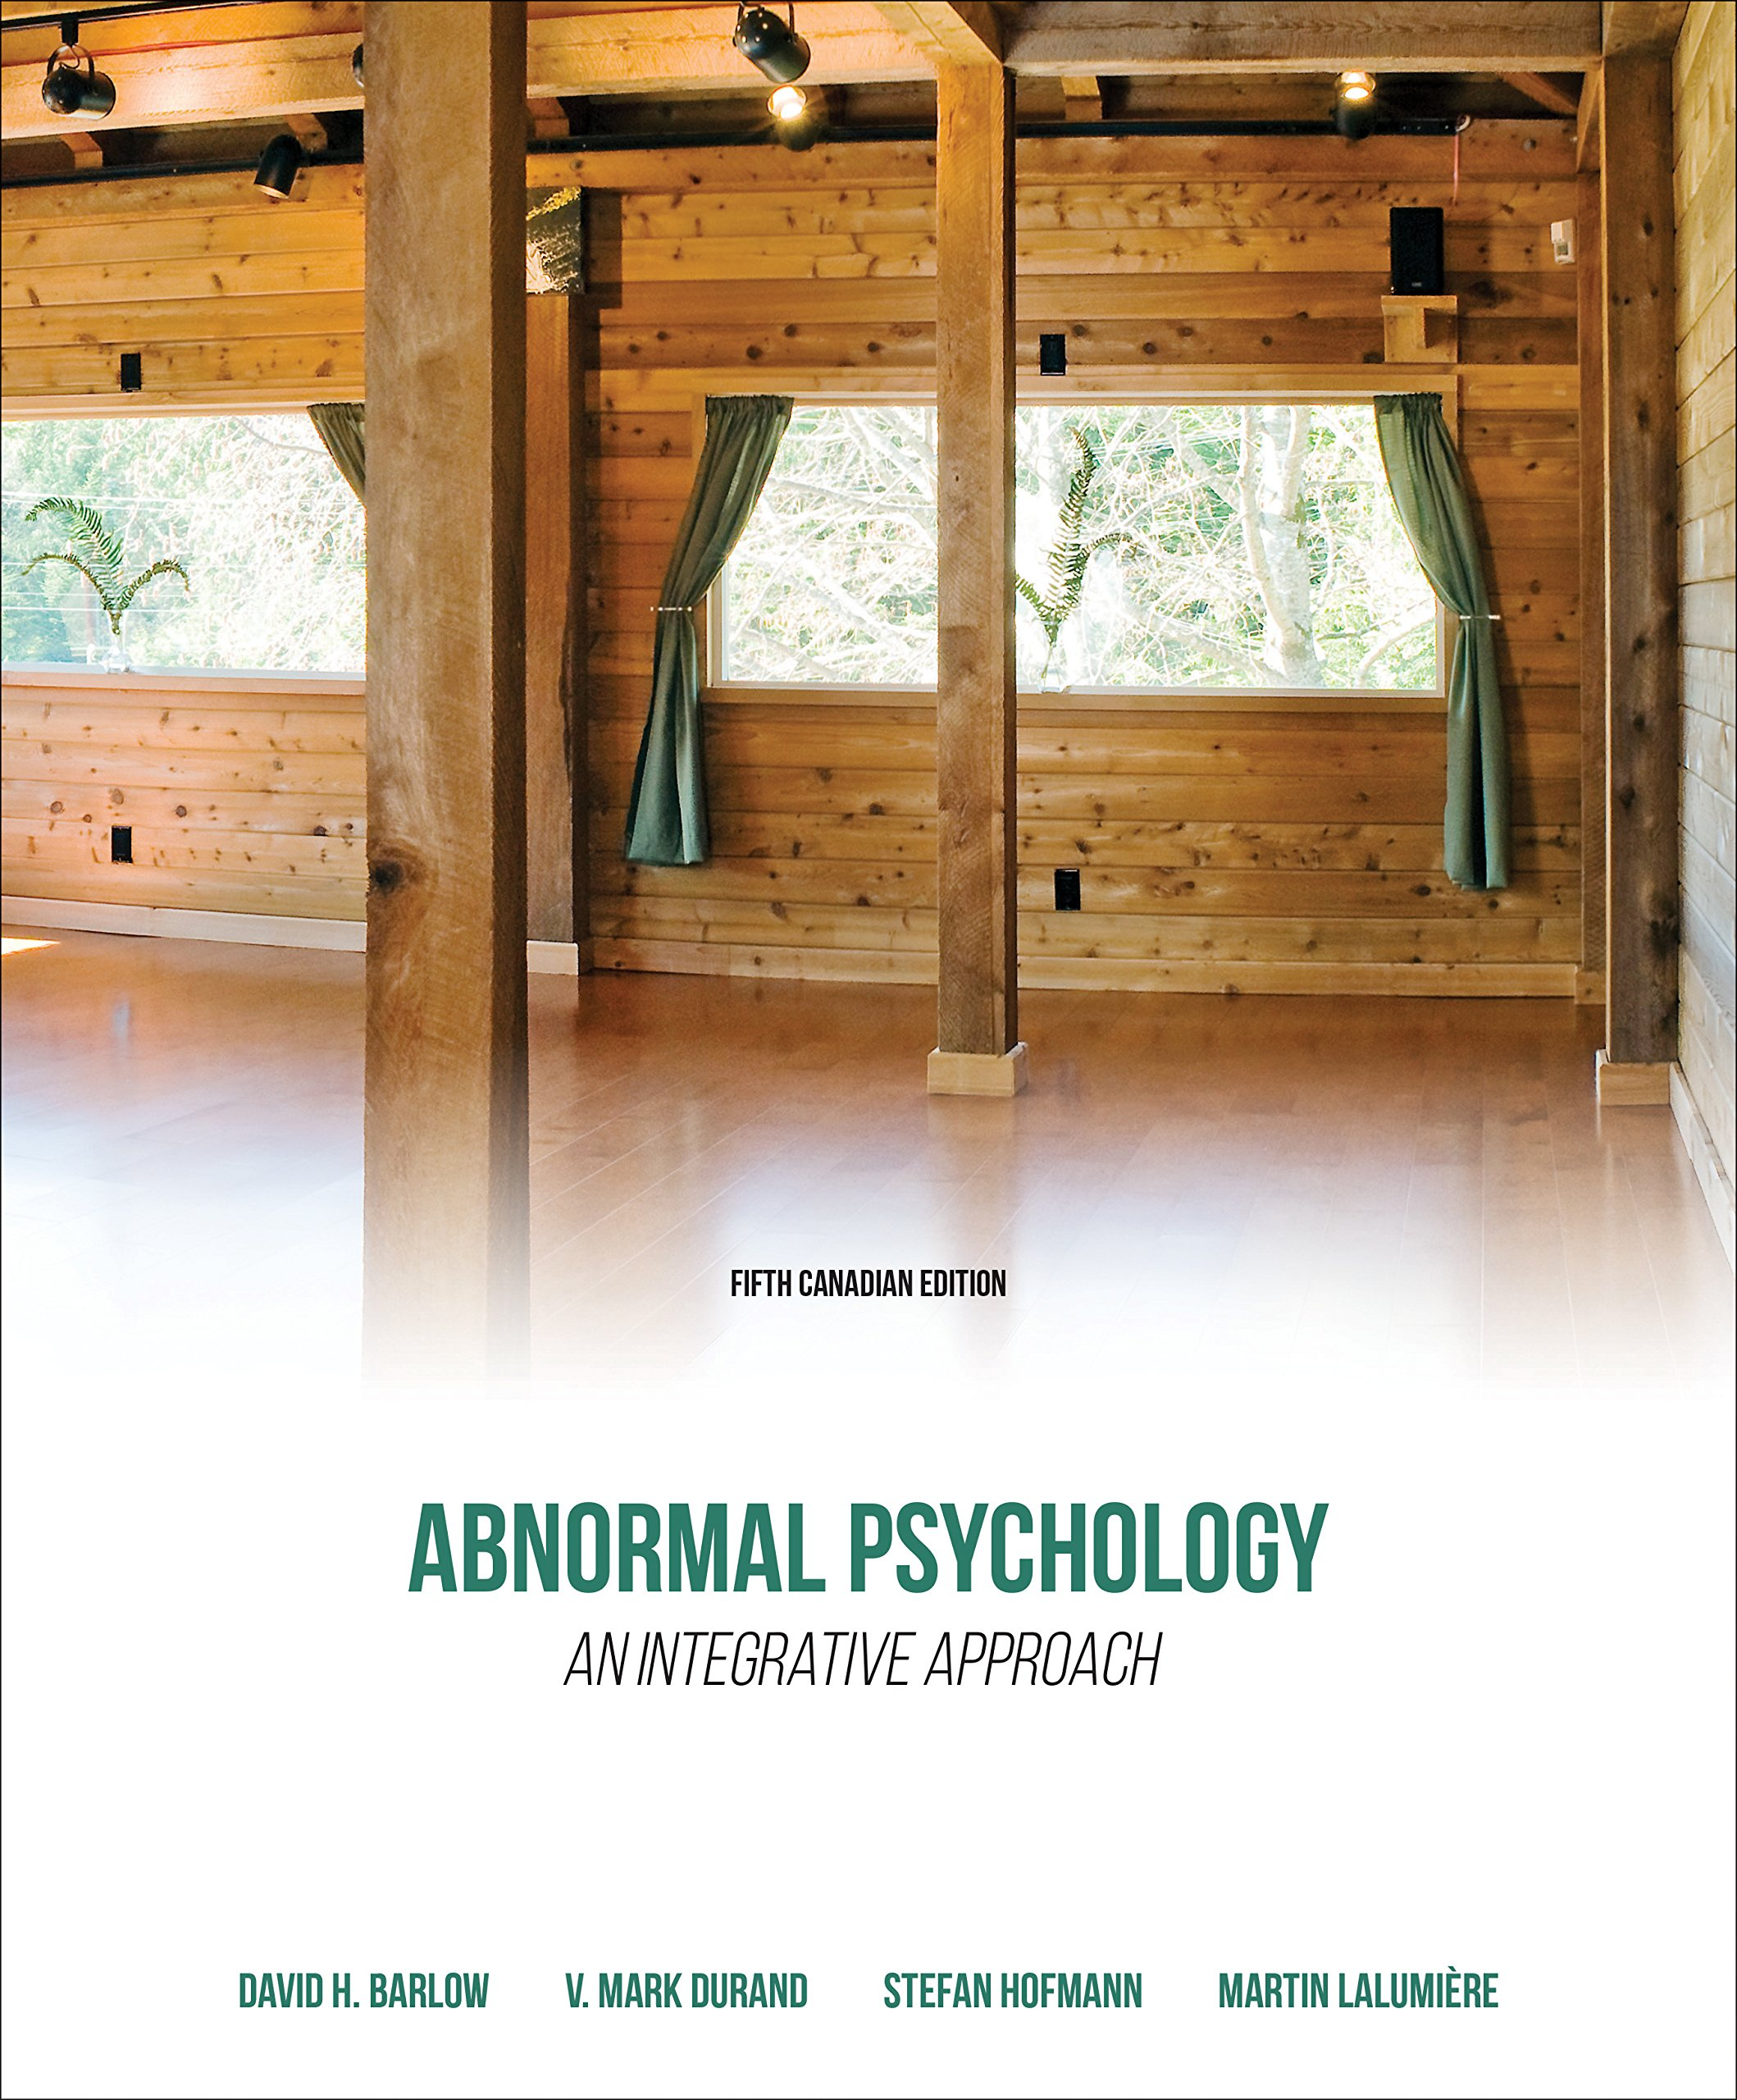 Pdf edition canadian approach an abnormal psychology 4th integrative